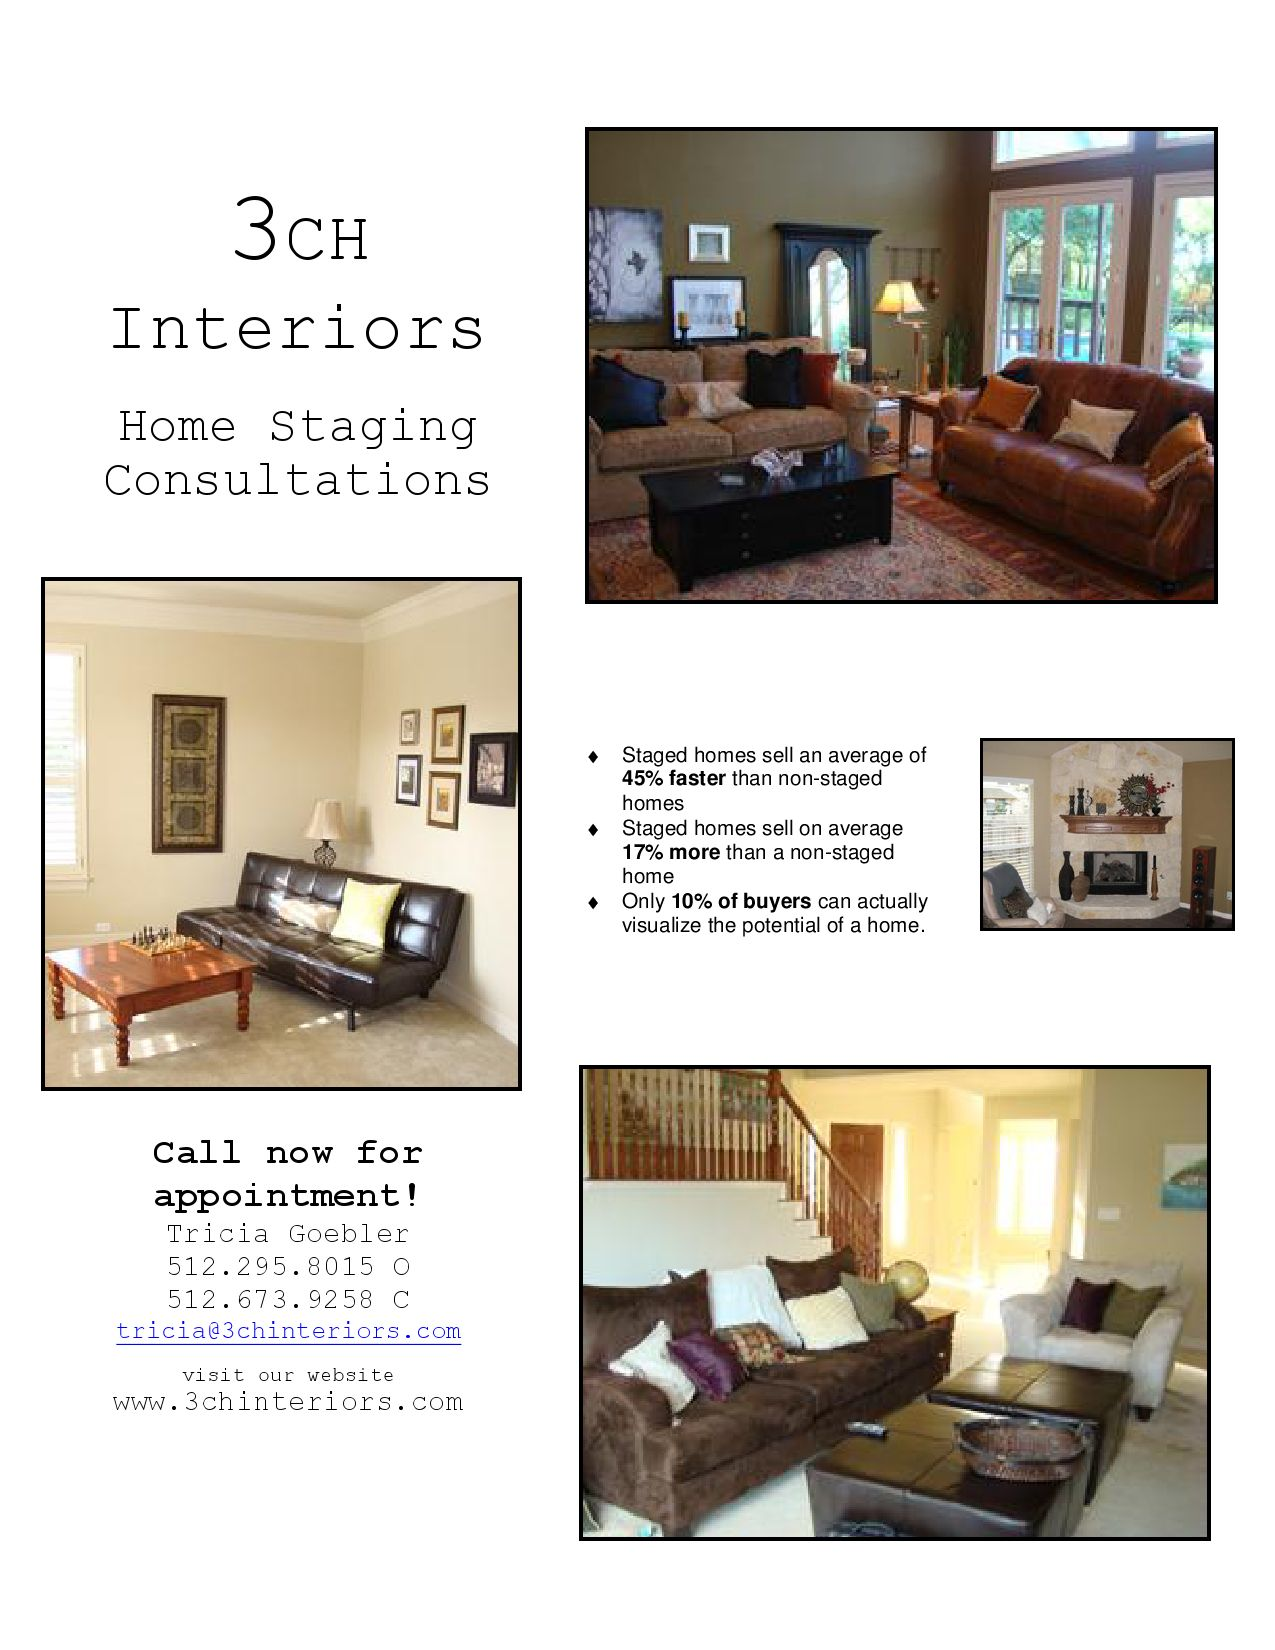 Home Staging Flyer By Marc Goebler Issuu